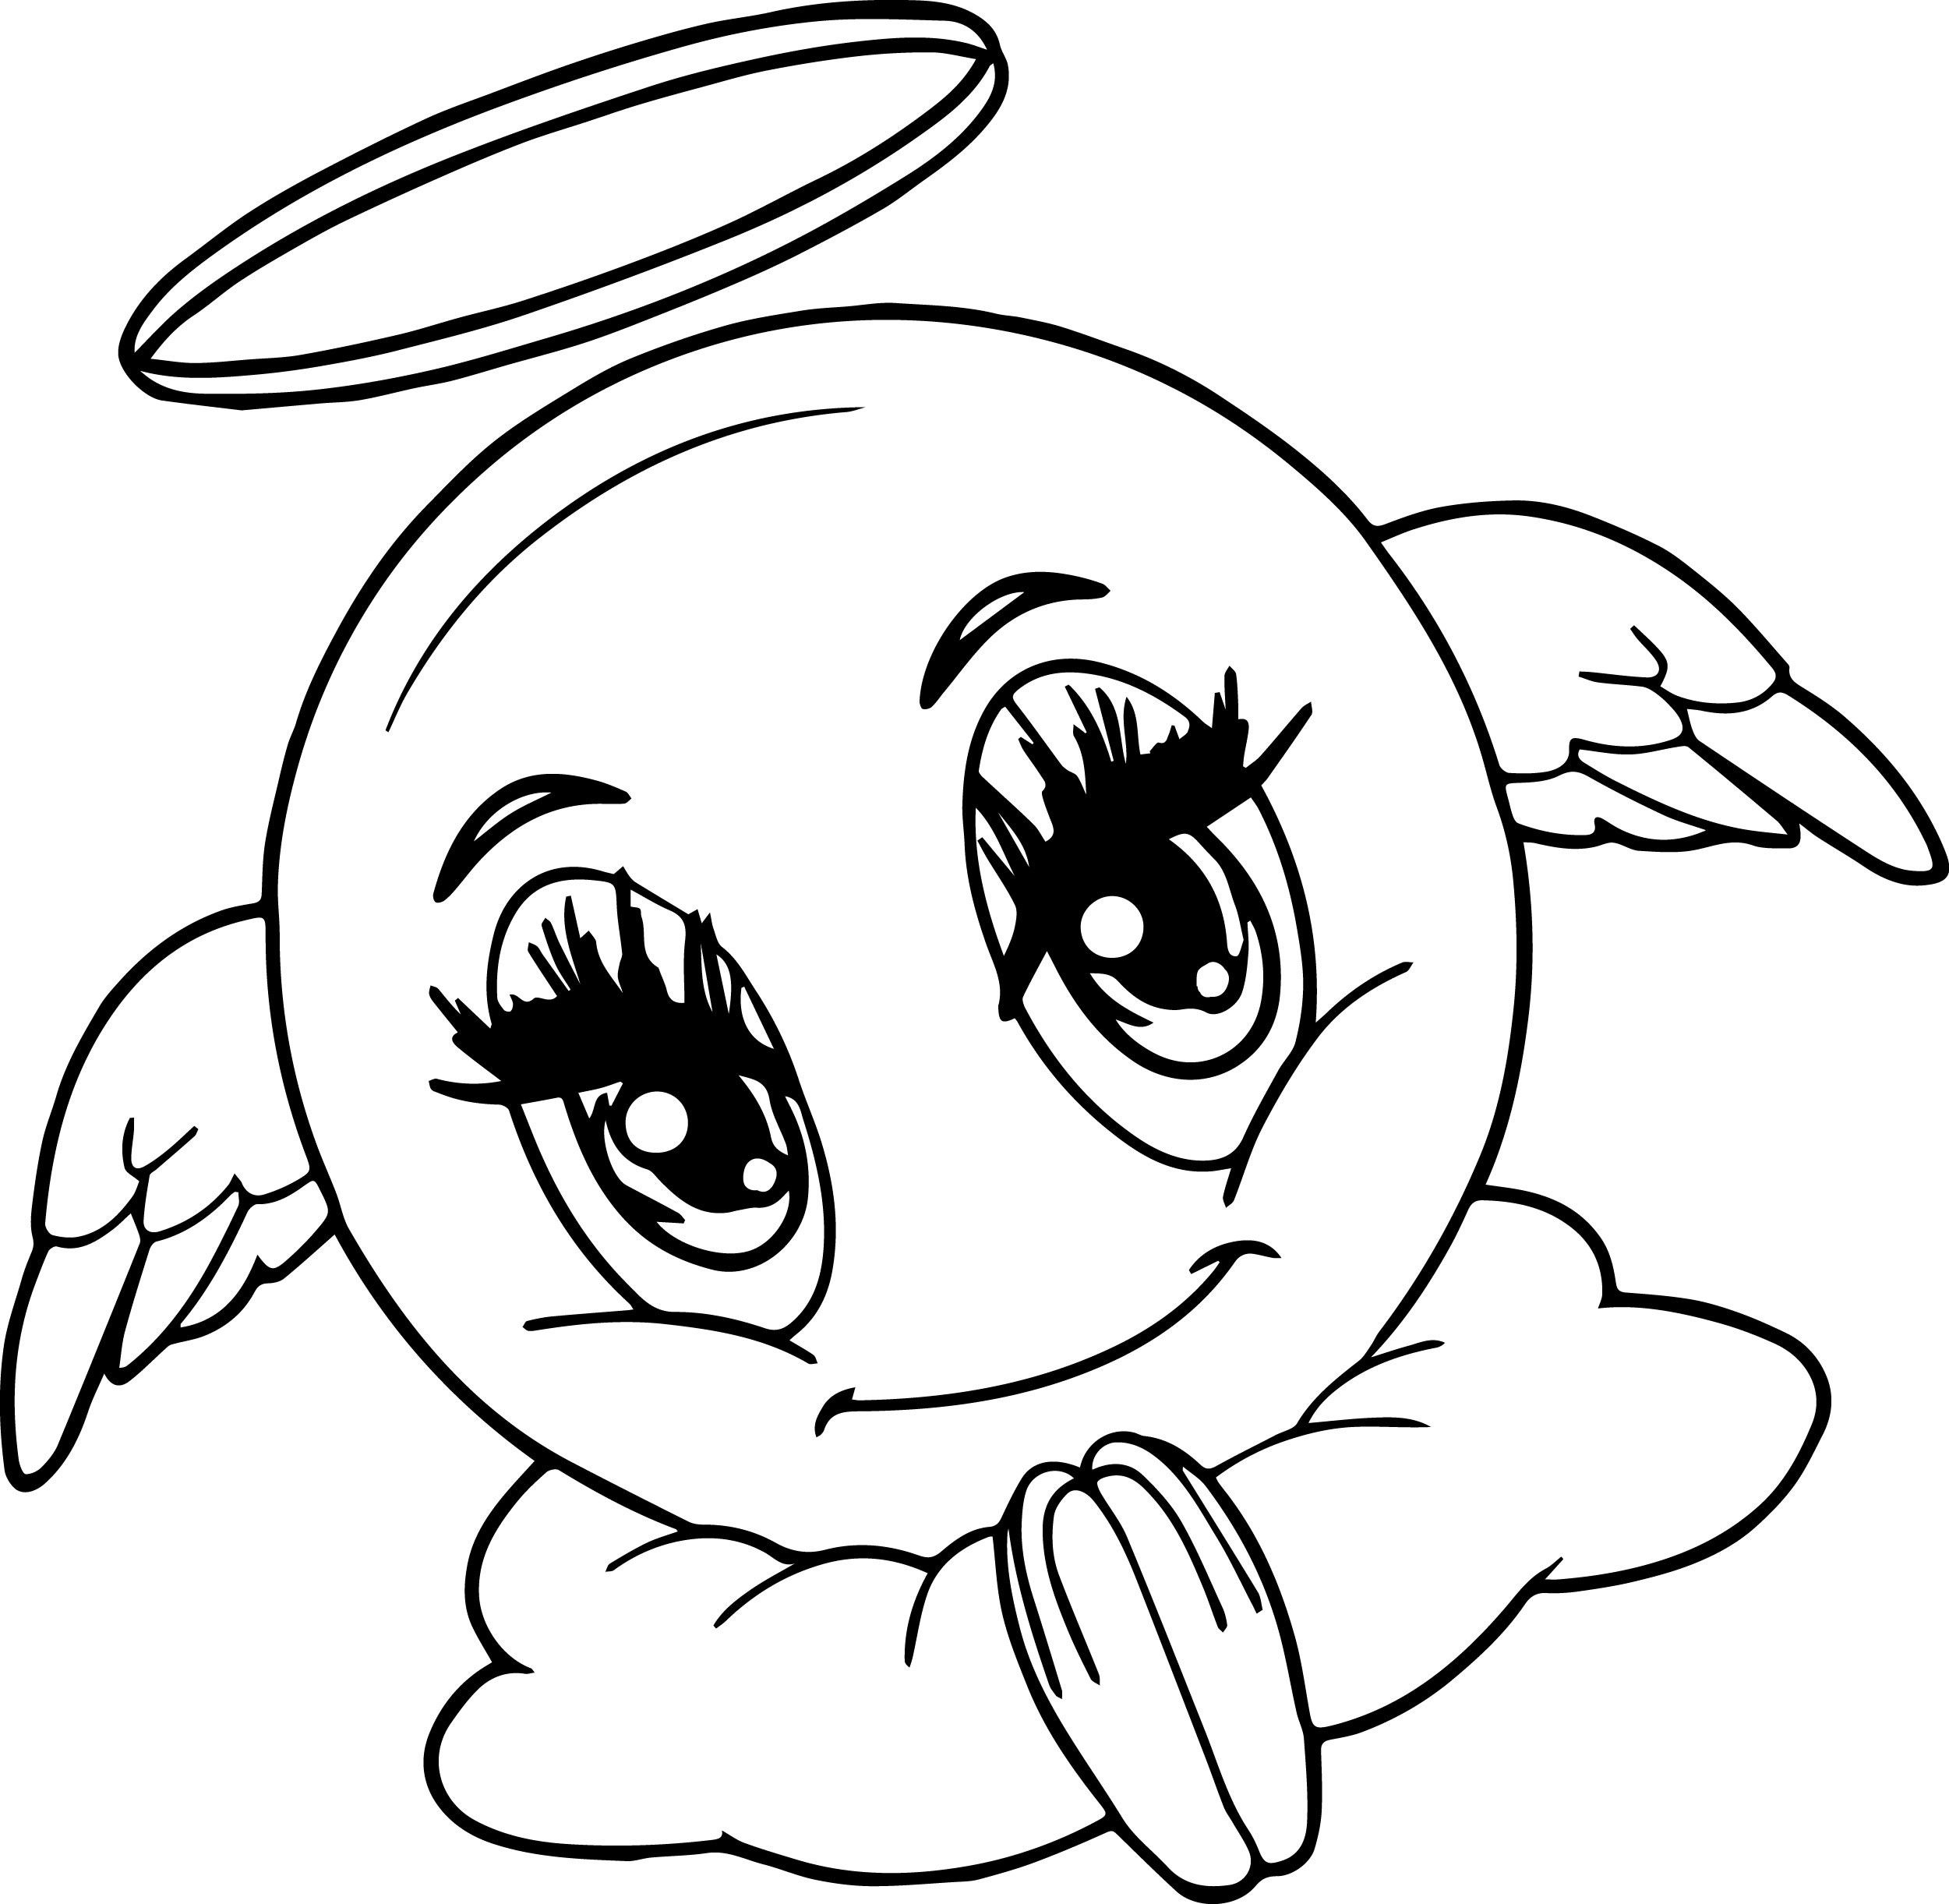 Unicorn Emoji Coloring Pages Through The Thousand Photographs On The Internet Concerning Unicorn E Emoji Coloring Pages Cartoon Coloring Pages Coloring Pages